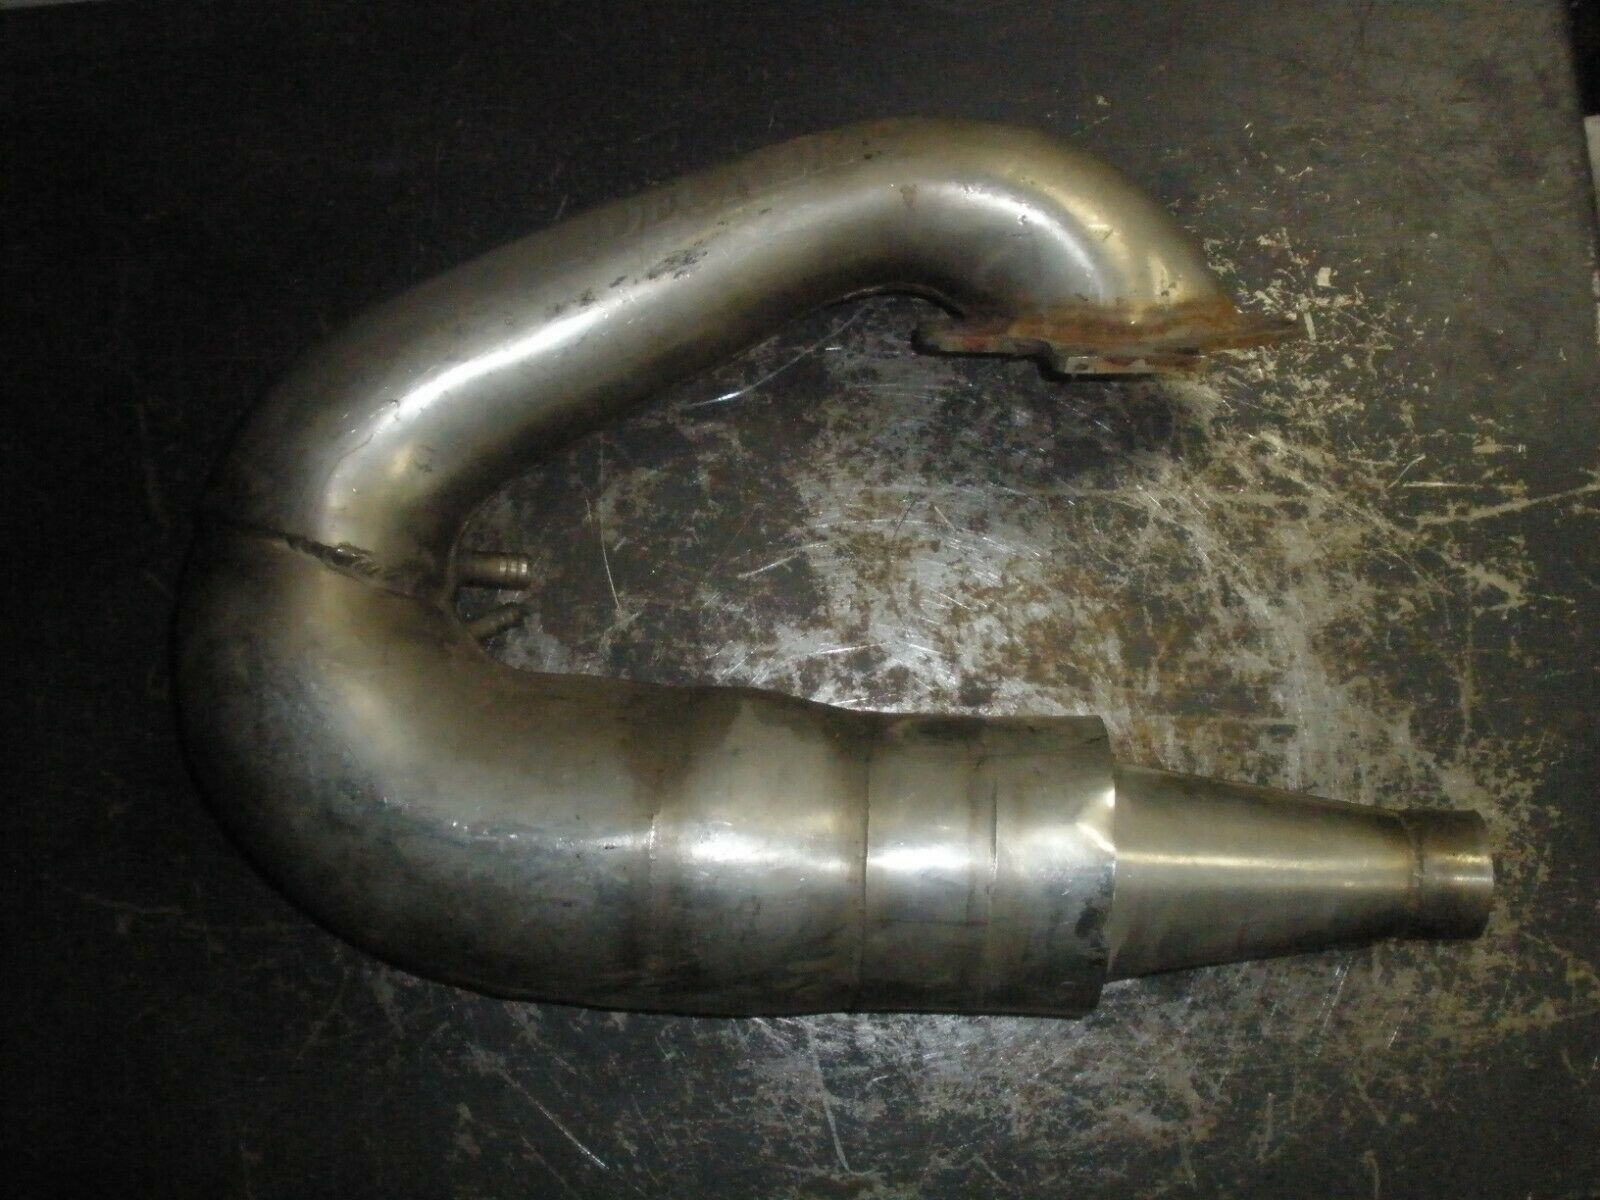 AFTER MARKET DECKER SEADOO 580 587 650 657 EXHAUST PIPE PERFORMANCE PIPE